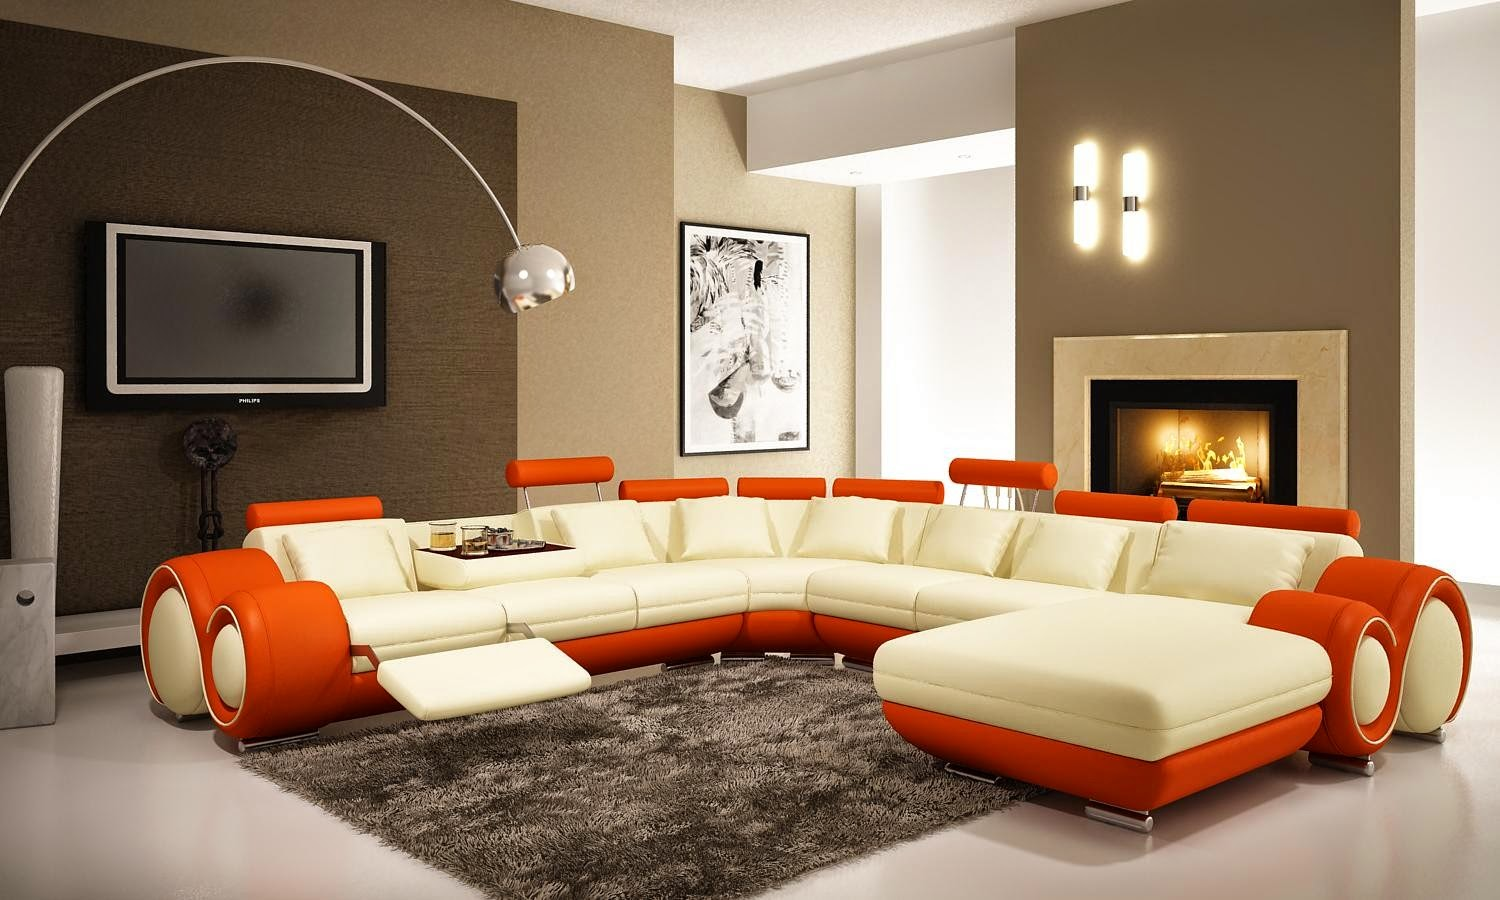 Contemporary sofa ideas modern ideas for living room - Furniture ideas for living room contemporary ...